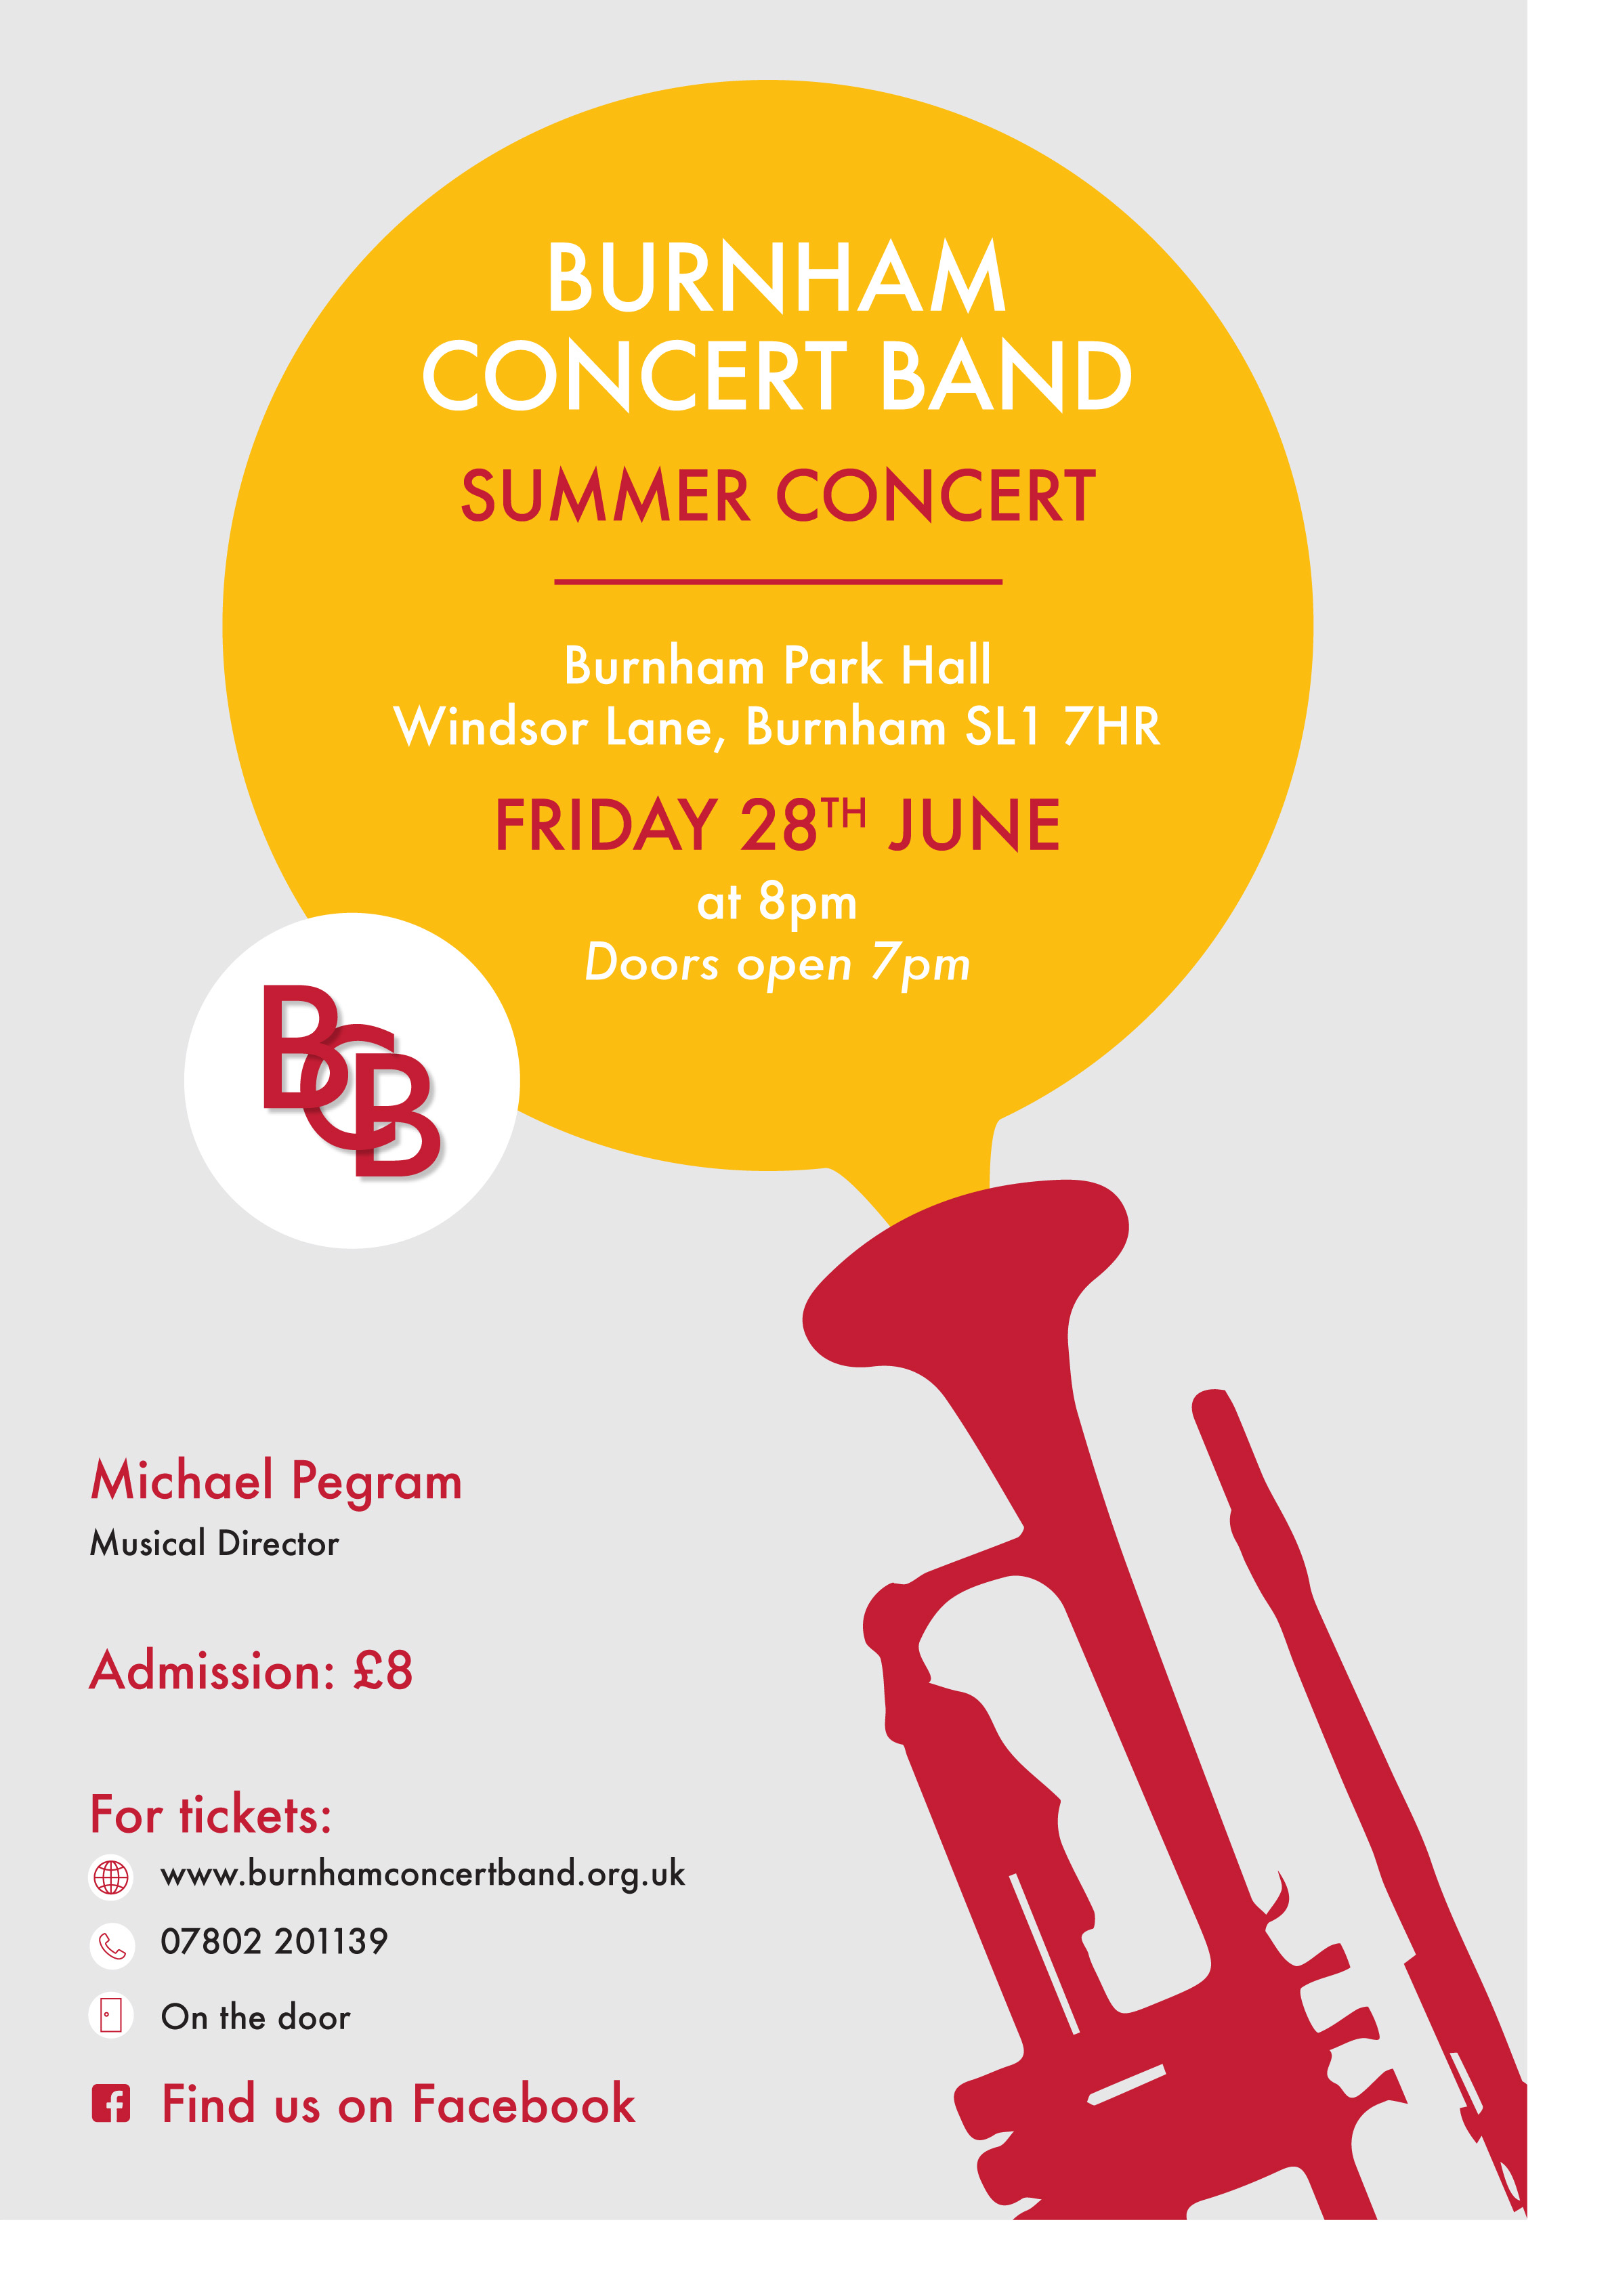 Burnham Concert Band Summer Concert